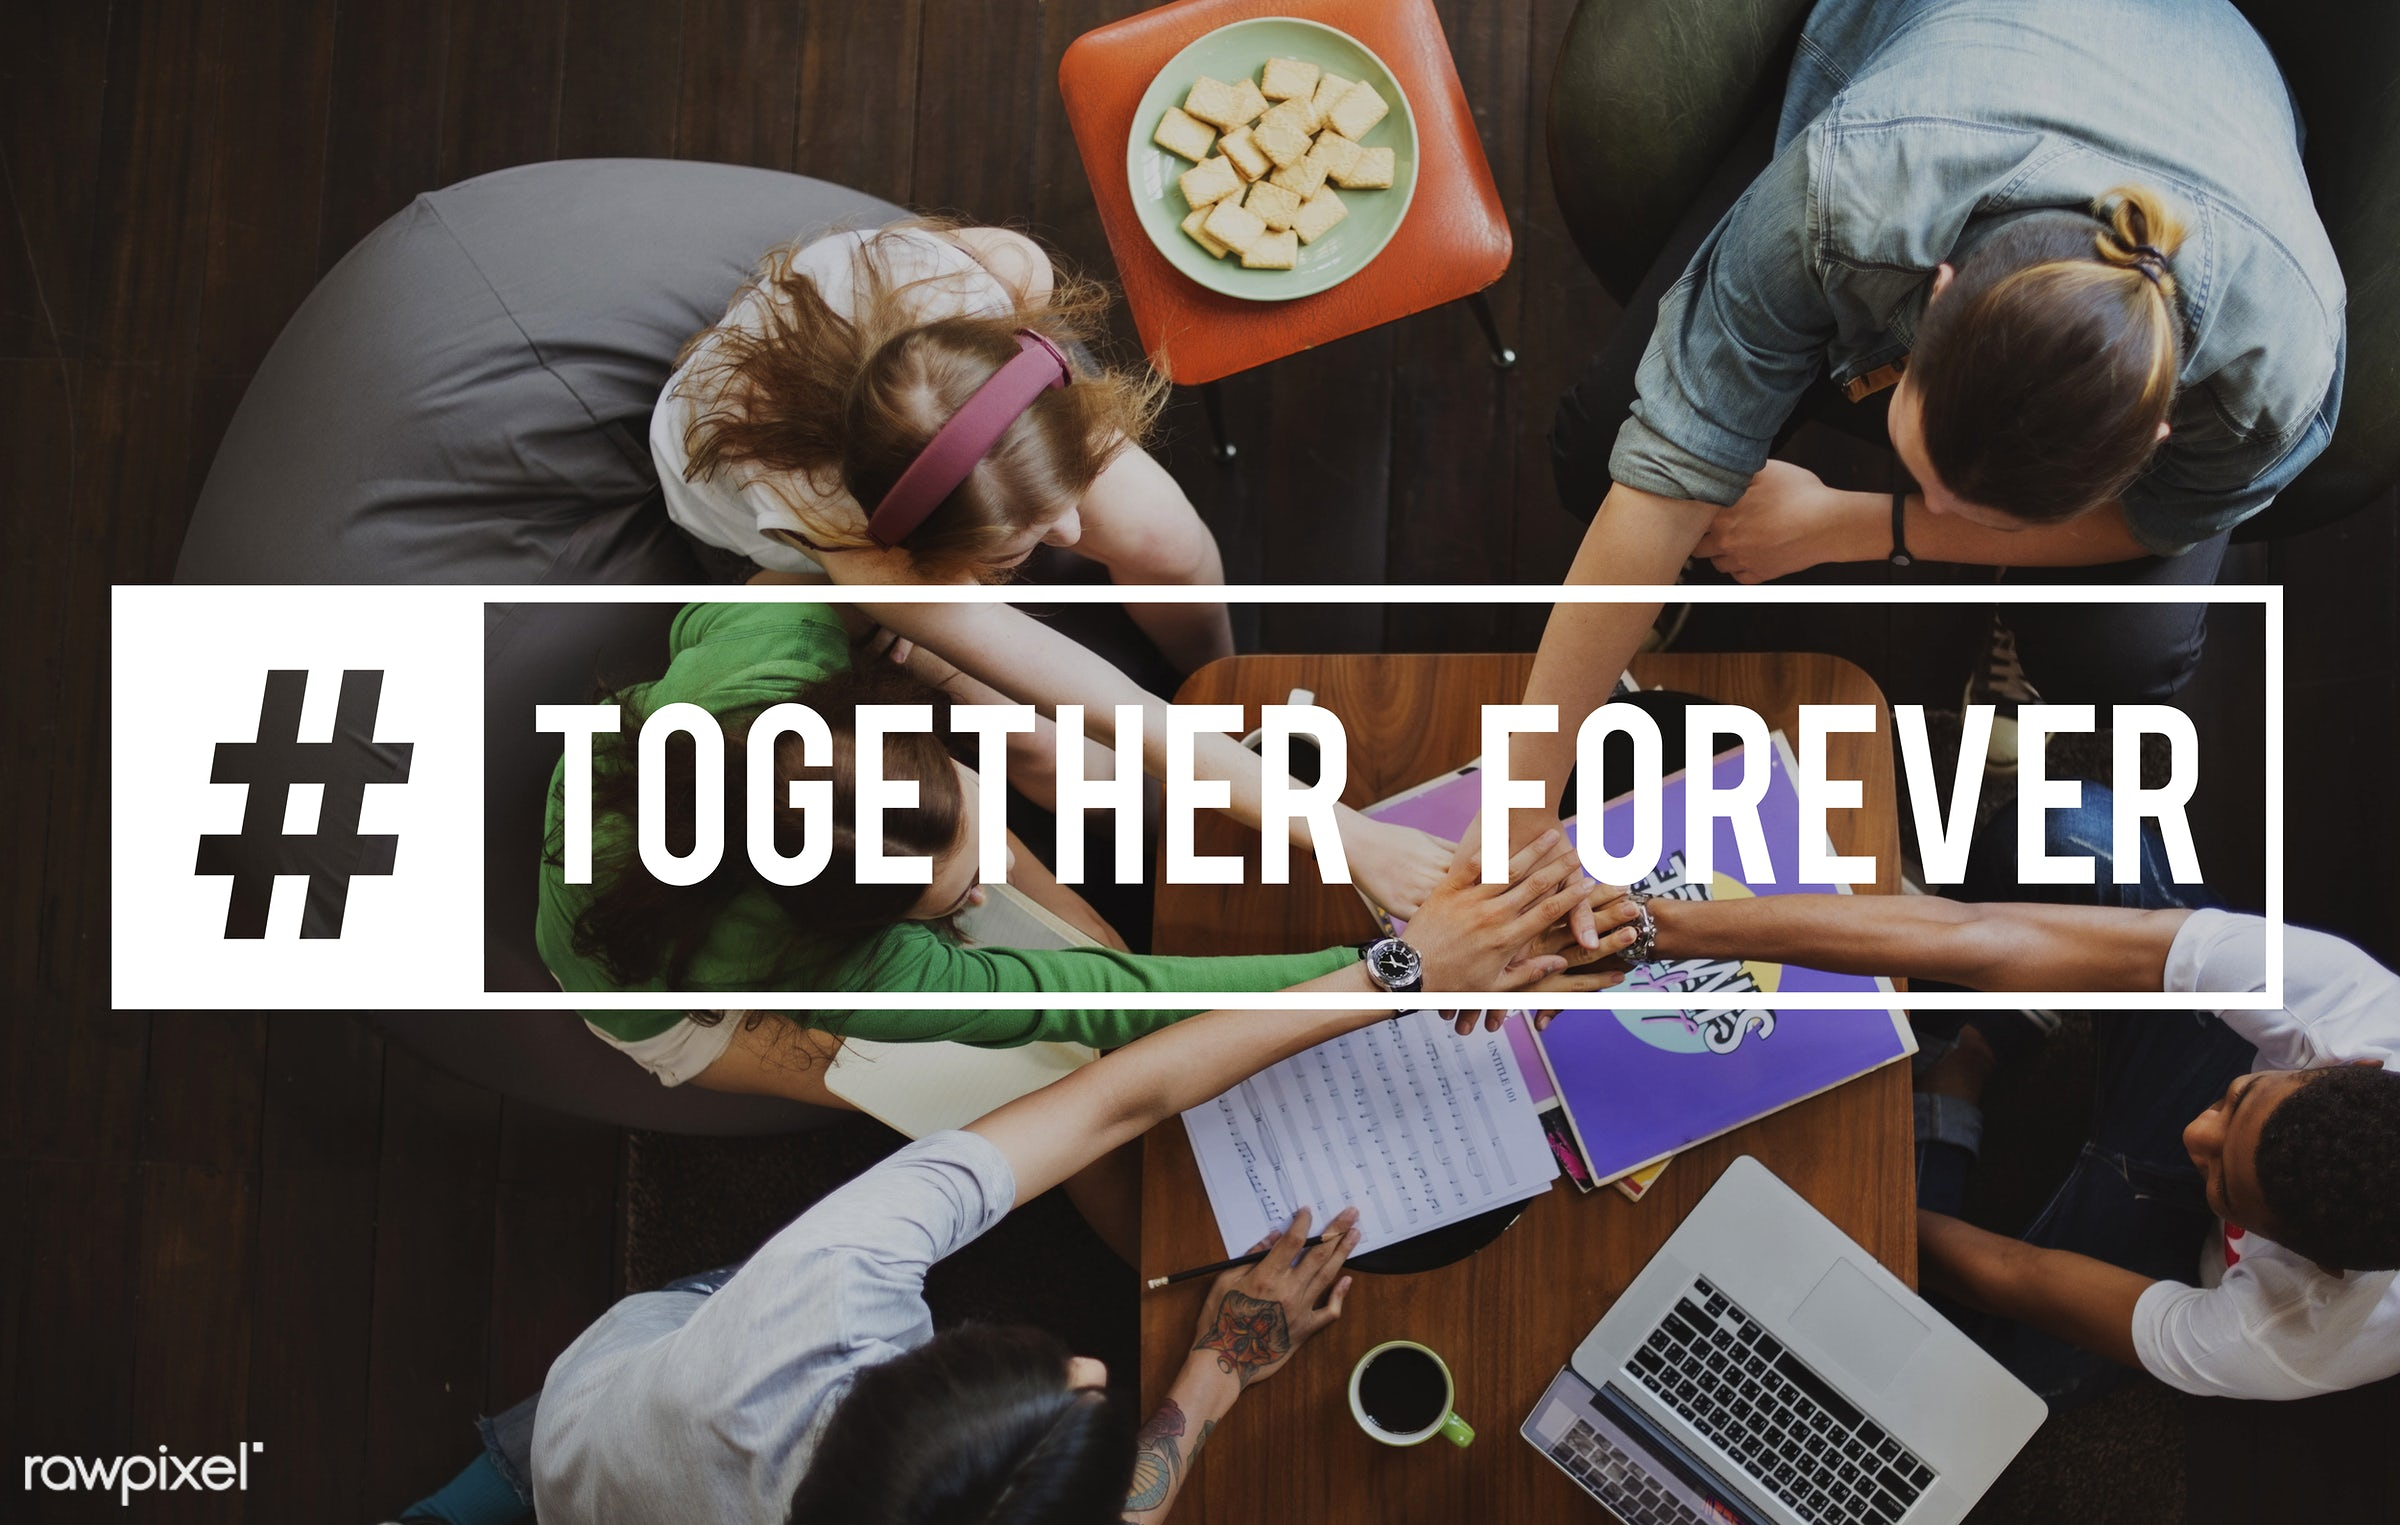 african descent, agreement, alliance, asian, better together, bond, caucasian, coalition, collaborate, combined, connection...